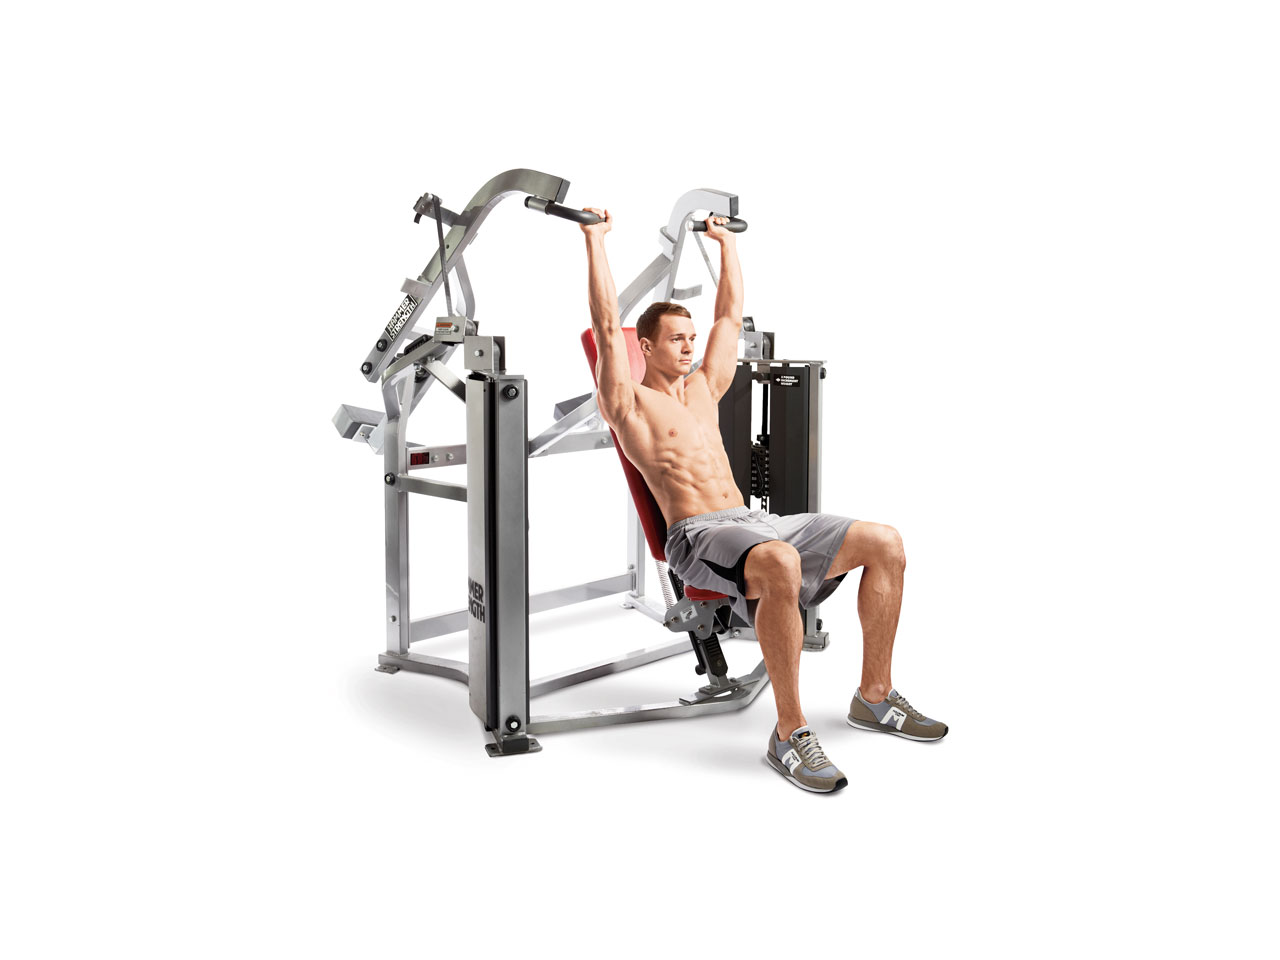 Shoulder Press Video - Watch Proper Form, Get Tips & More ...